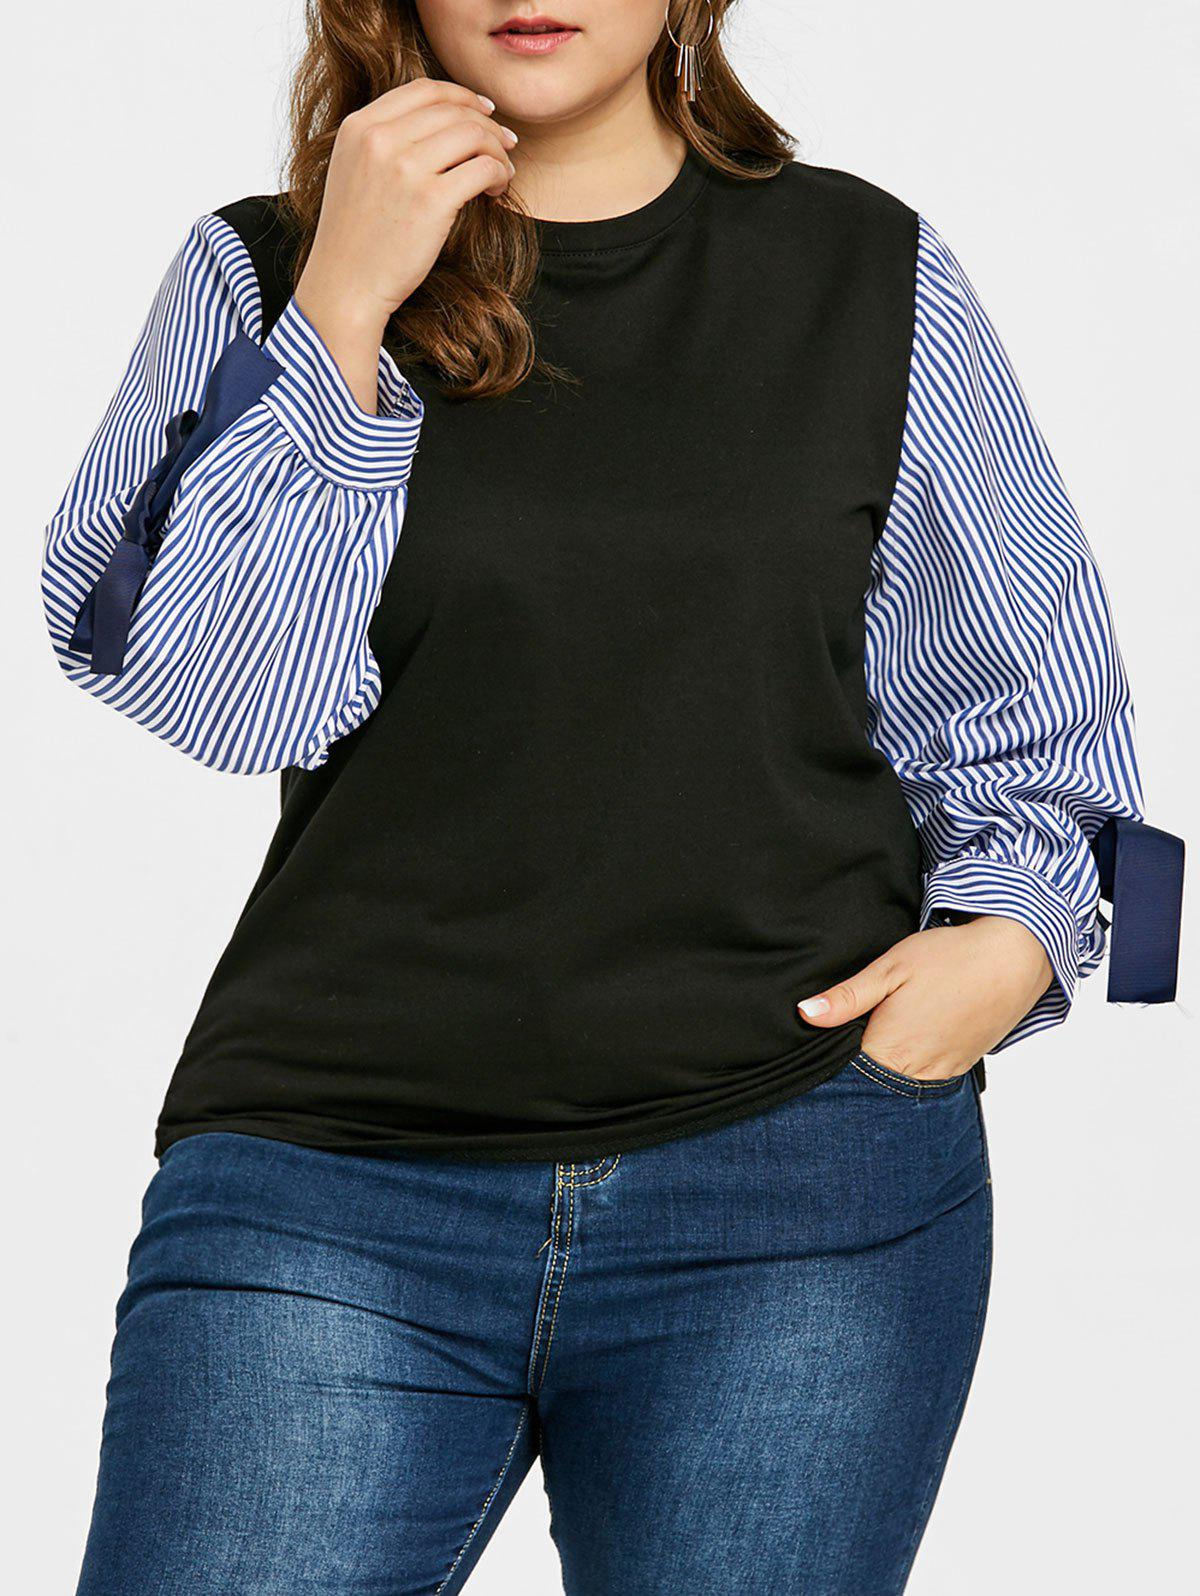 Buy Plus Size Bowknot Embellished Striped Sleeve Top